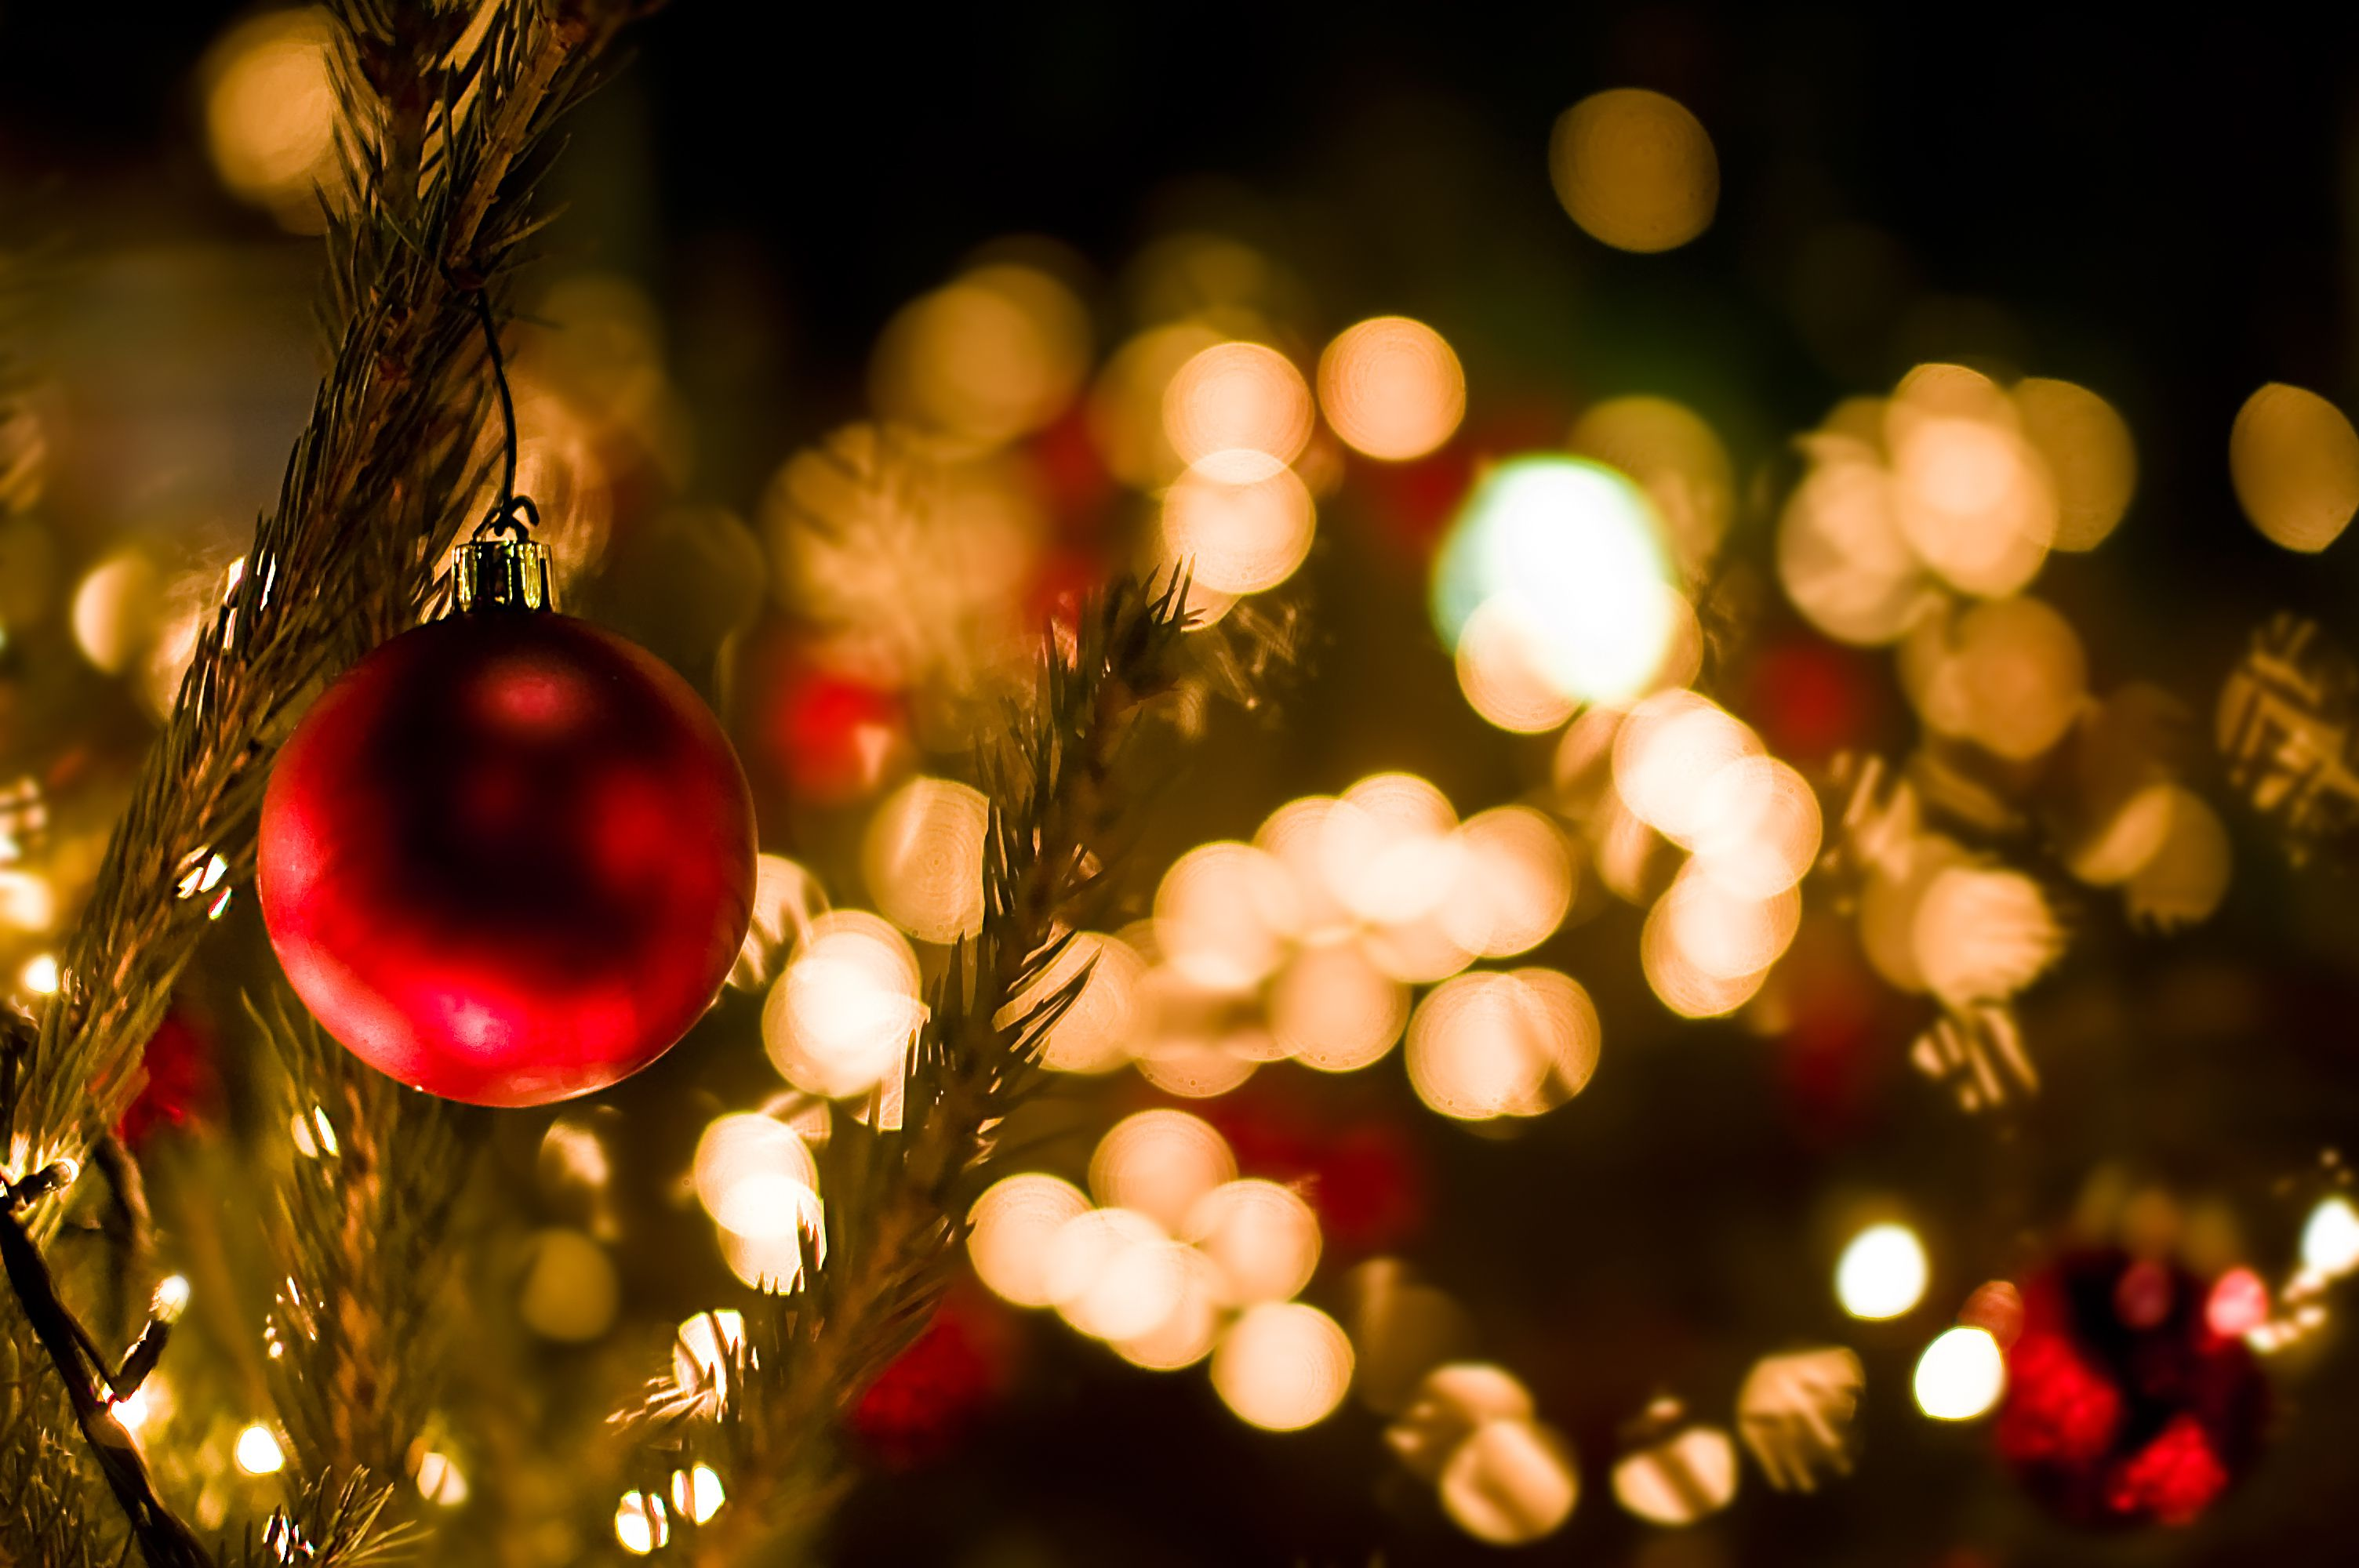 El Reno s Christmas on the Western Frontier Information on the